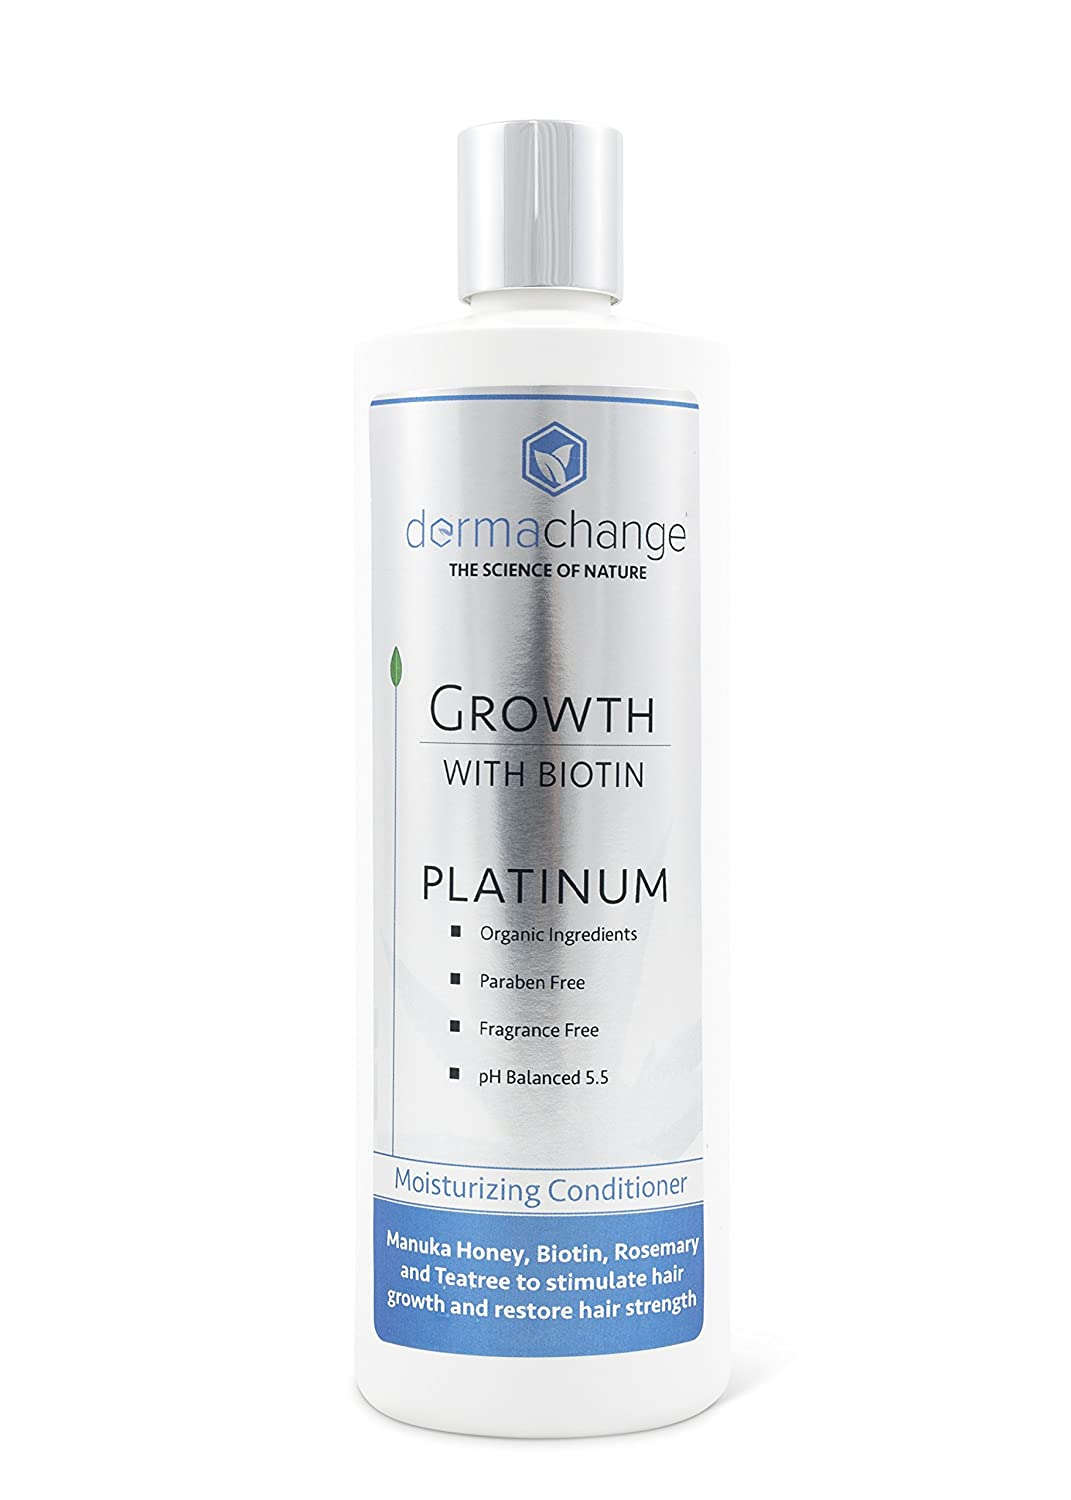 DermaChange Platinum Hair Growth Moisturizing Conditioner - With Argan Oil, Biotin & Tea Tree Extract - Supports Hair Regrowth - Hair Loss Treatments (16 oz) - Made in USA